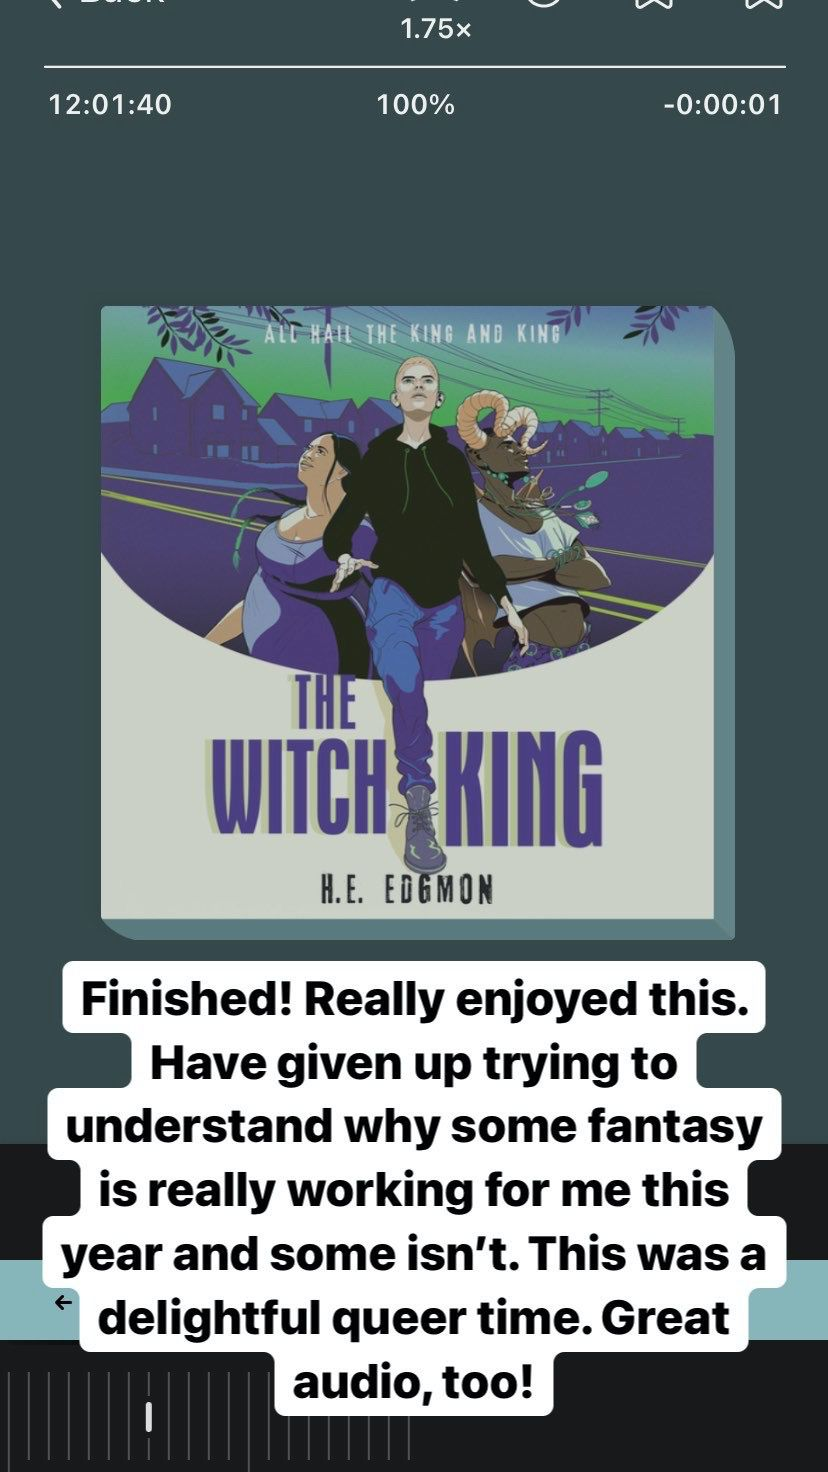 Screenshot of an Instagram story showing The Witch King by H.E. Edgmon playing in the Libby app. Text reads: Finished! Really enjoyed this. Have given up trying to understand why some fantasy is really working for me this year and some isn't. This was a delightful queer time. Great audio, too! Photo by me.